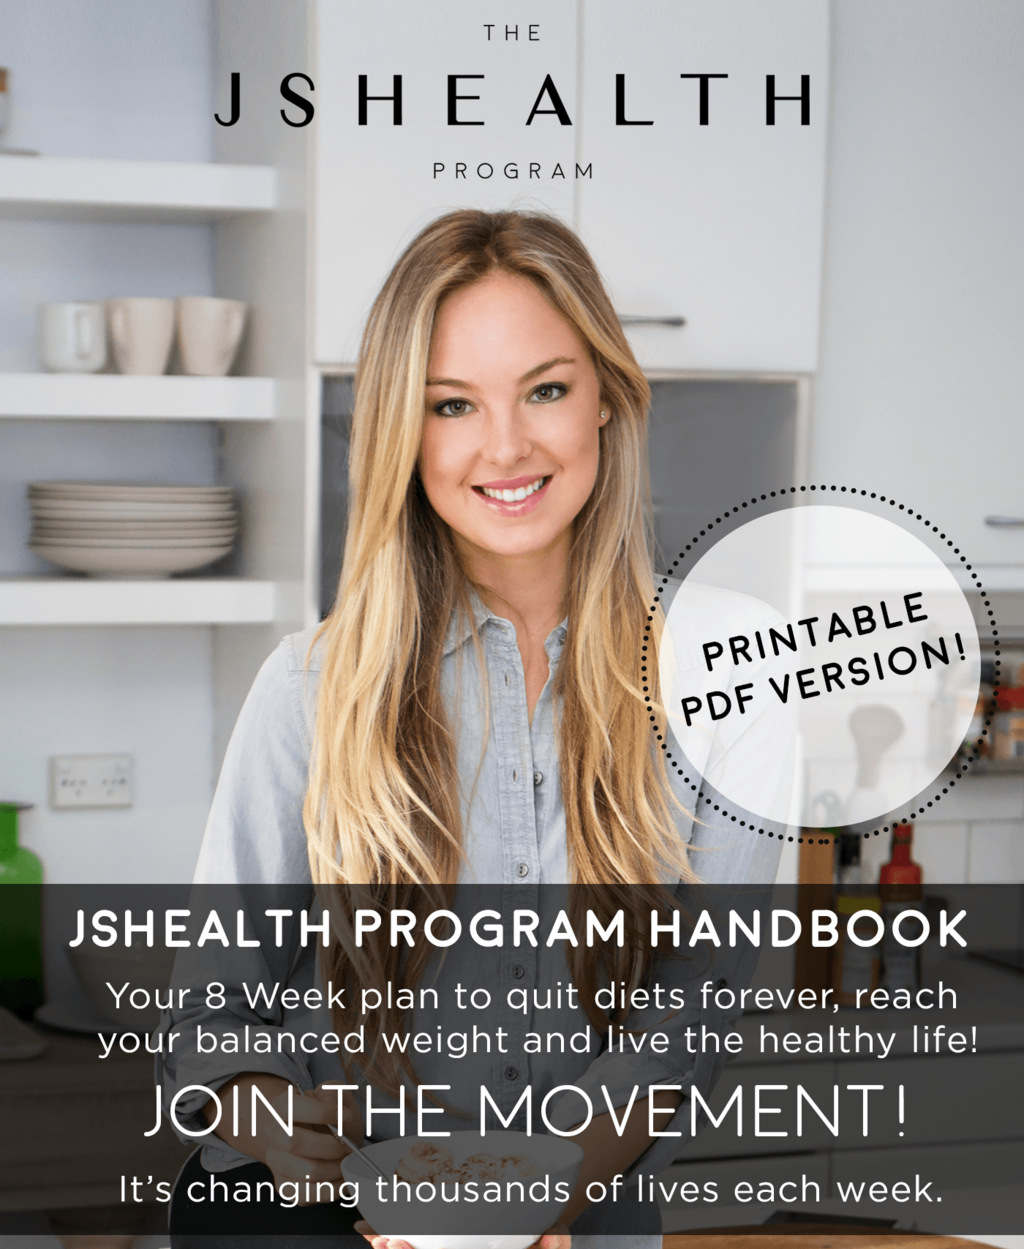 The JSHealth Program Handbook